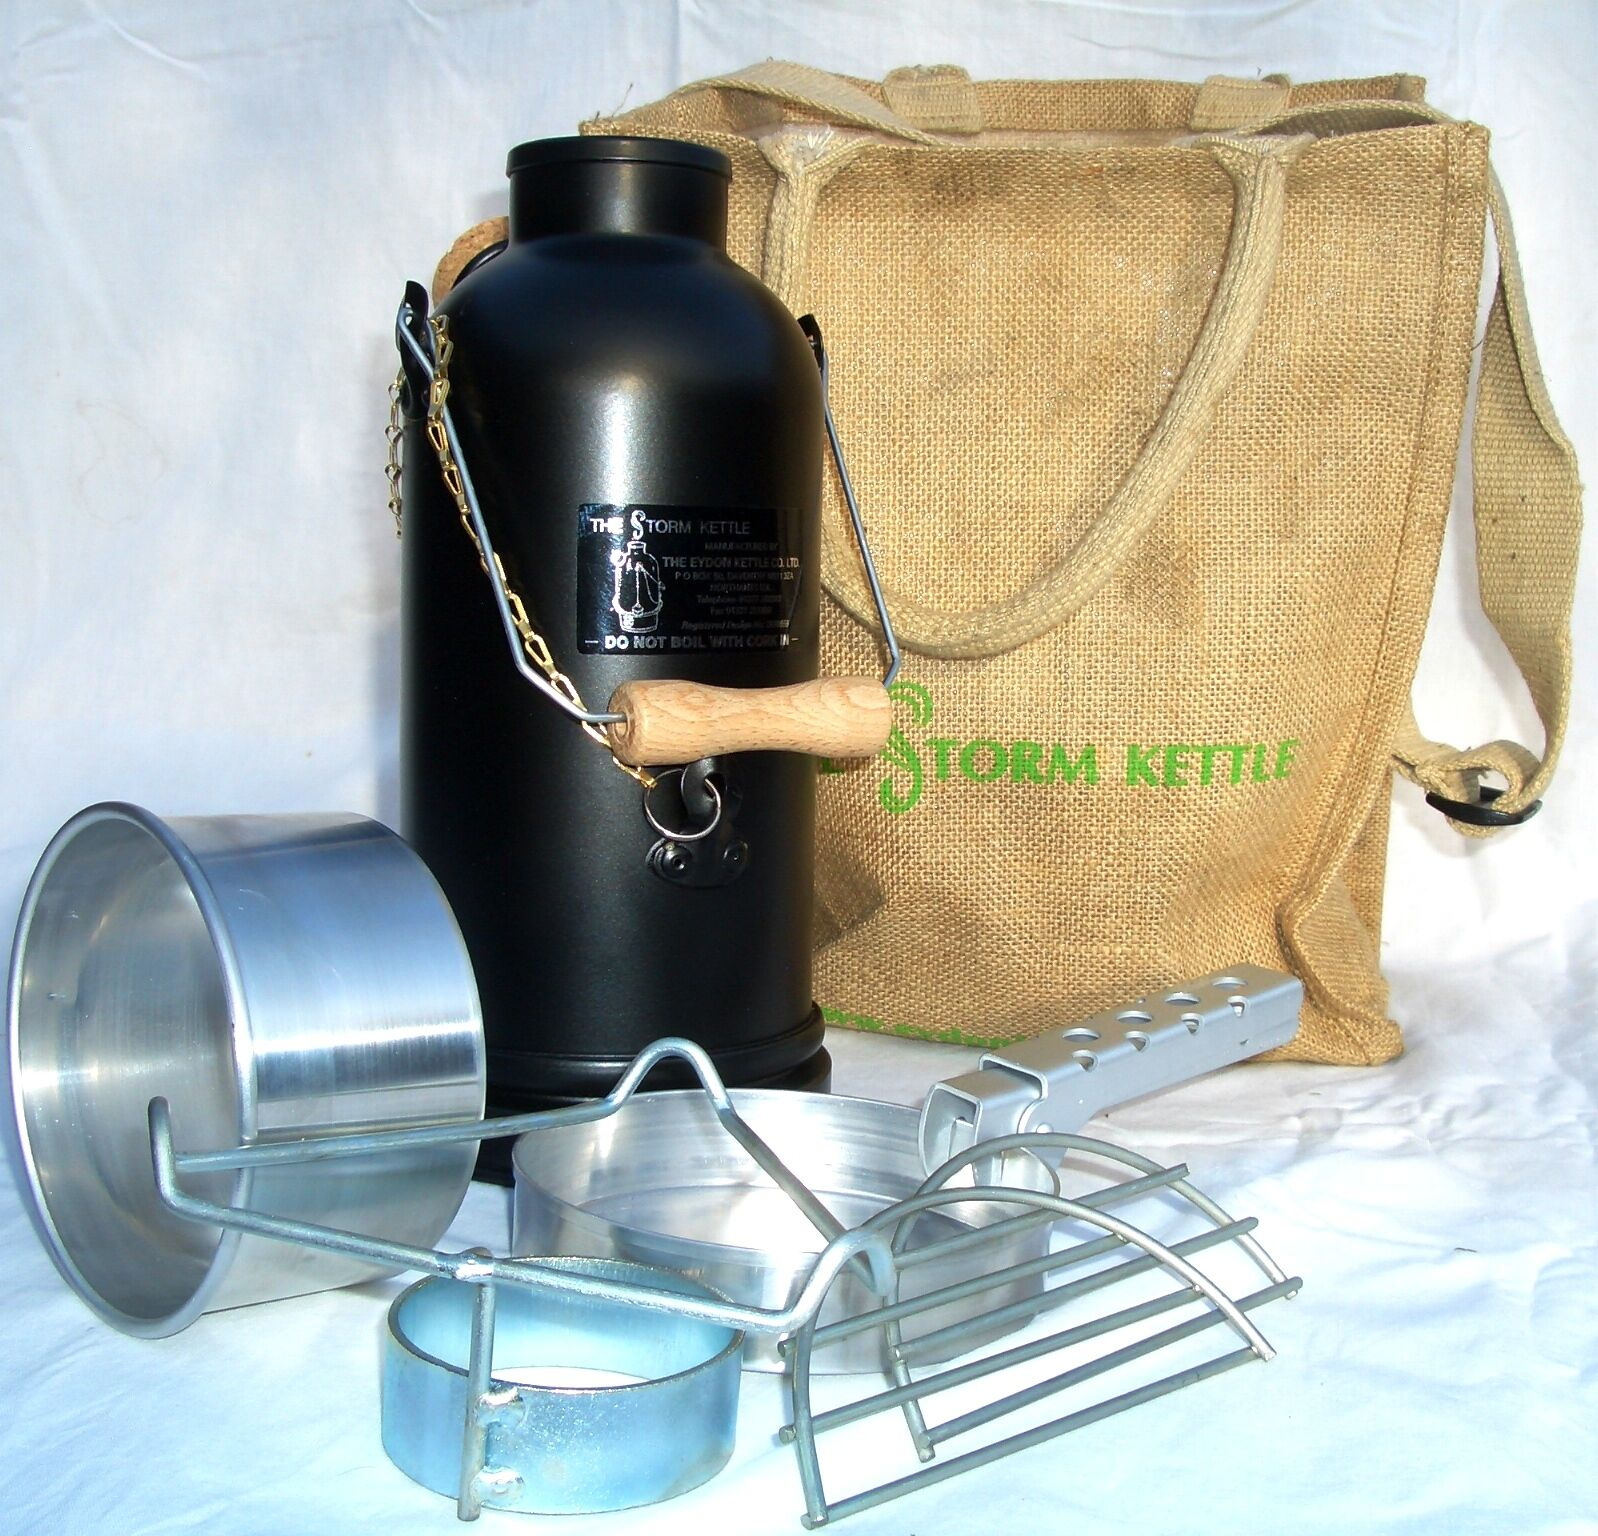 STORM Kettle Kit POPPIN, by request, exceptional value again  All year Gift